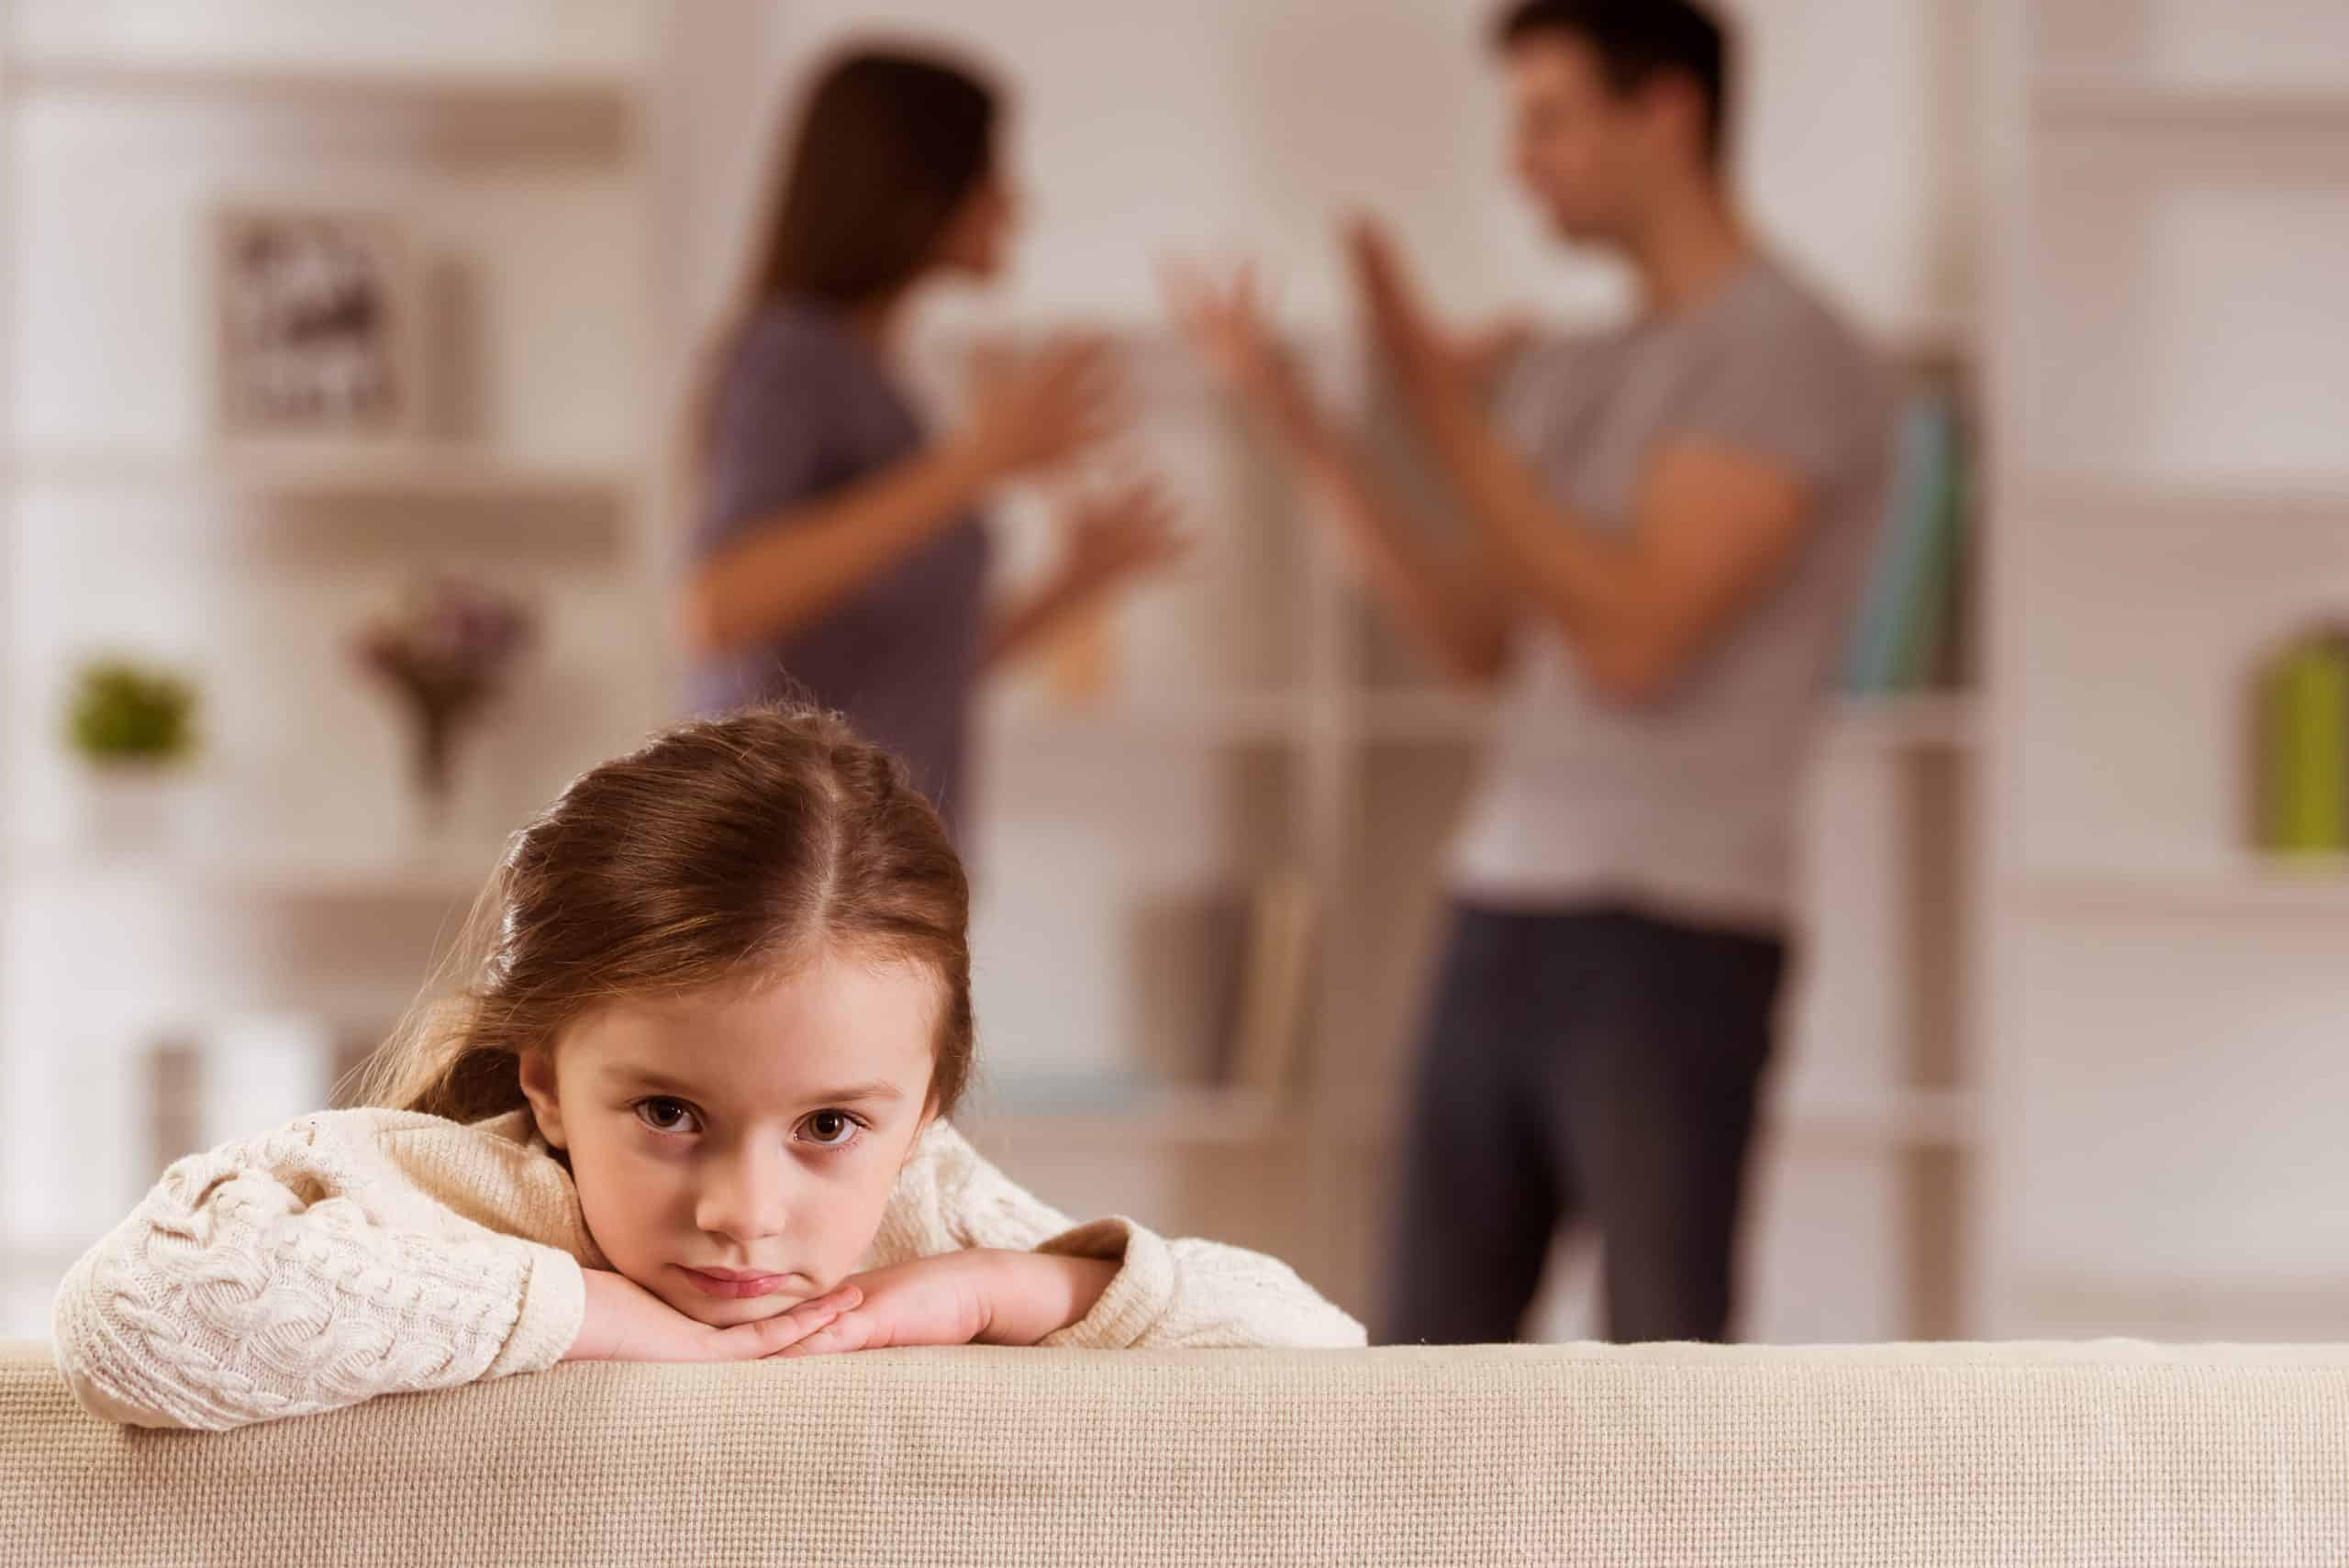 Little girl looking over the back of the couch with parents fighting in the background blurred